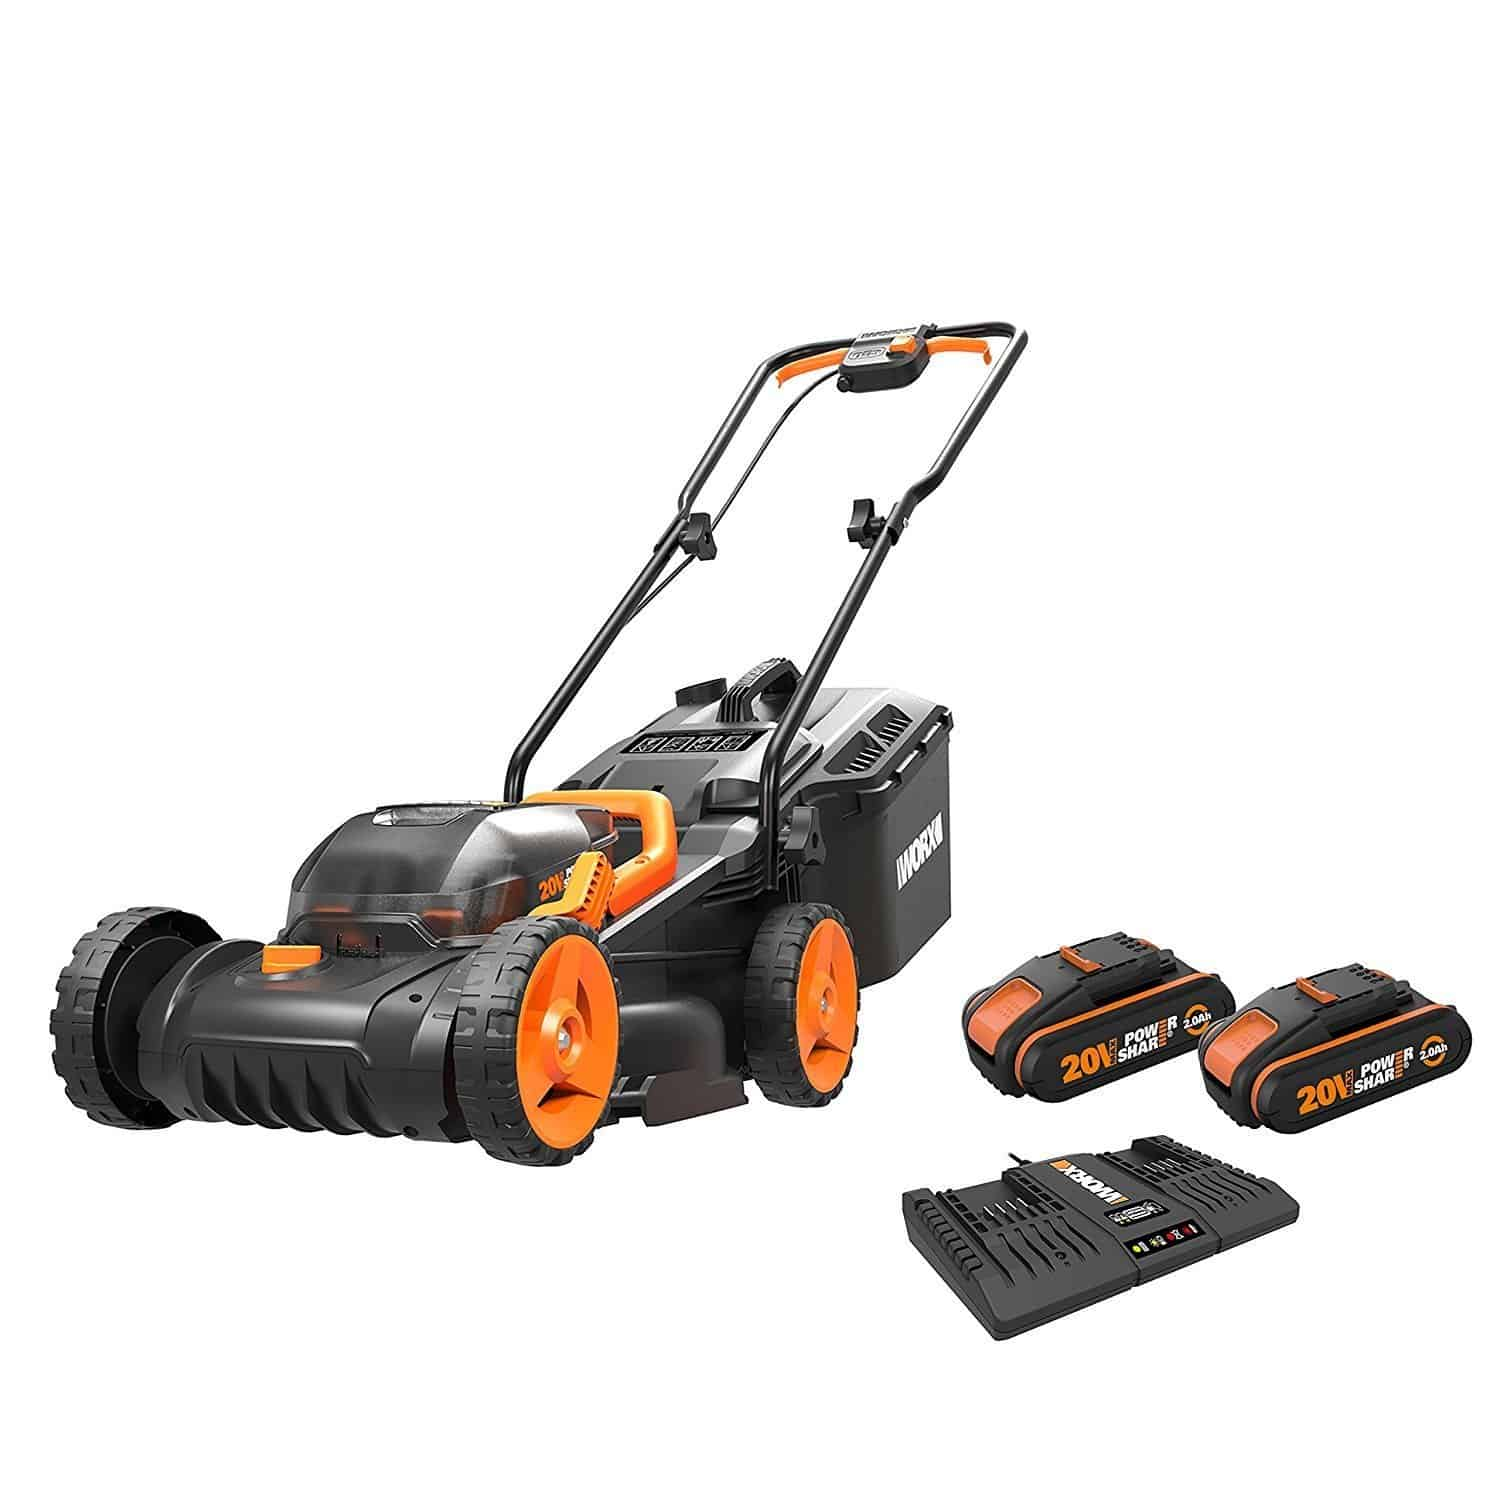 WORX-WG779E Review